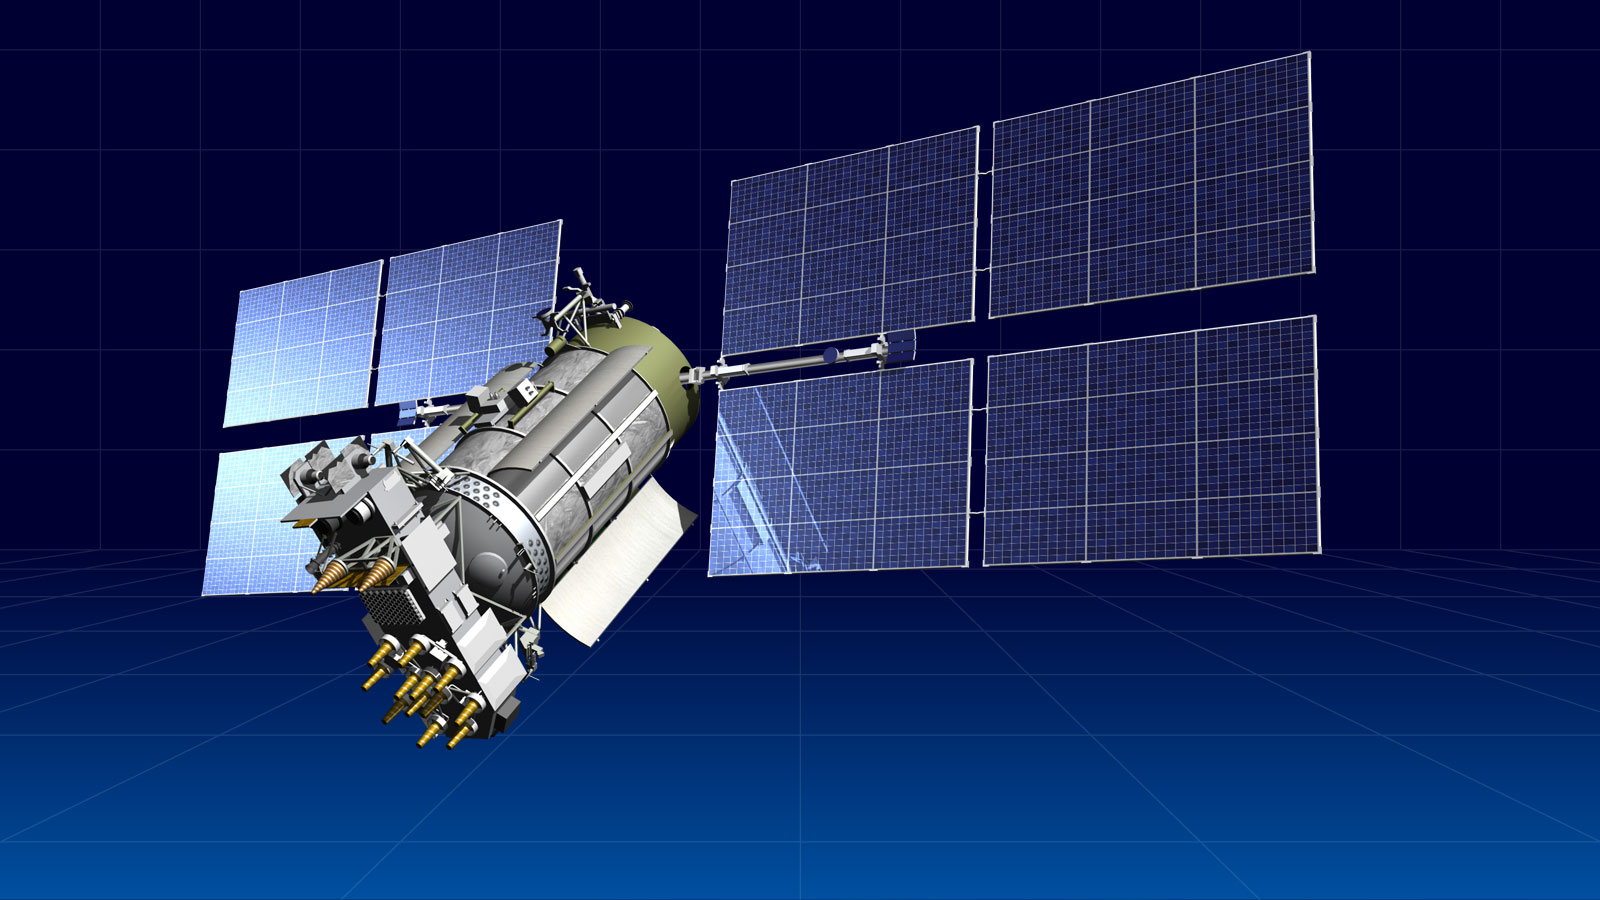 Artist's concept of a Glonass M navigation satellite. Credit: ISS Reshetnev